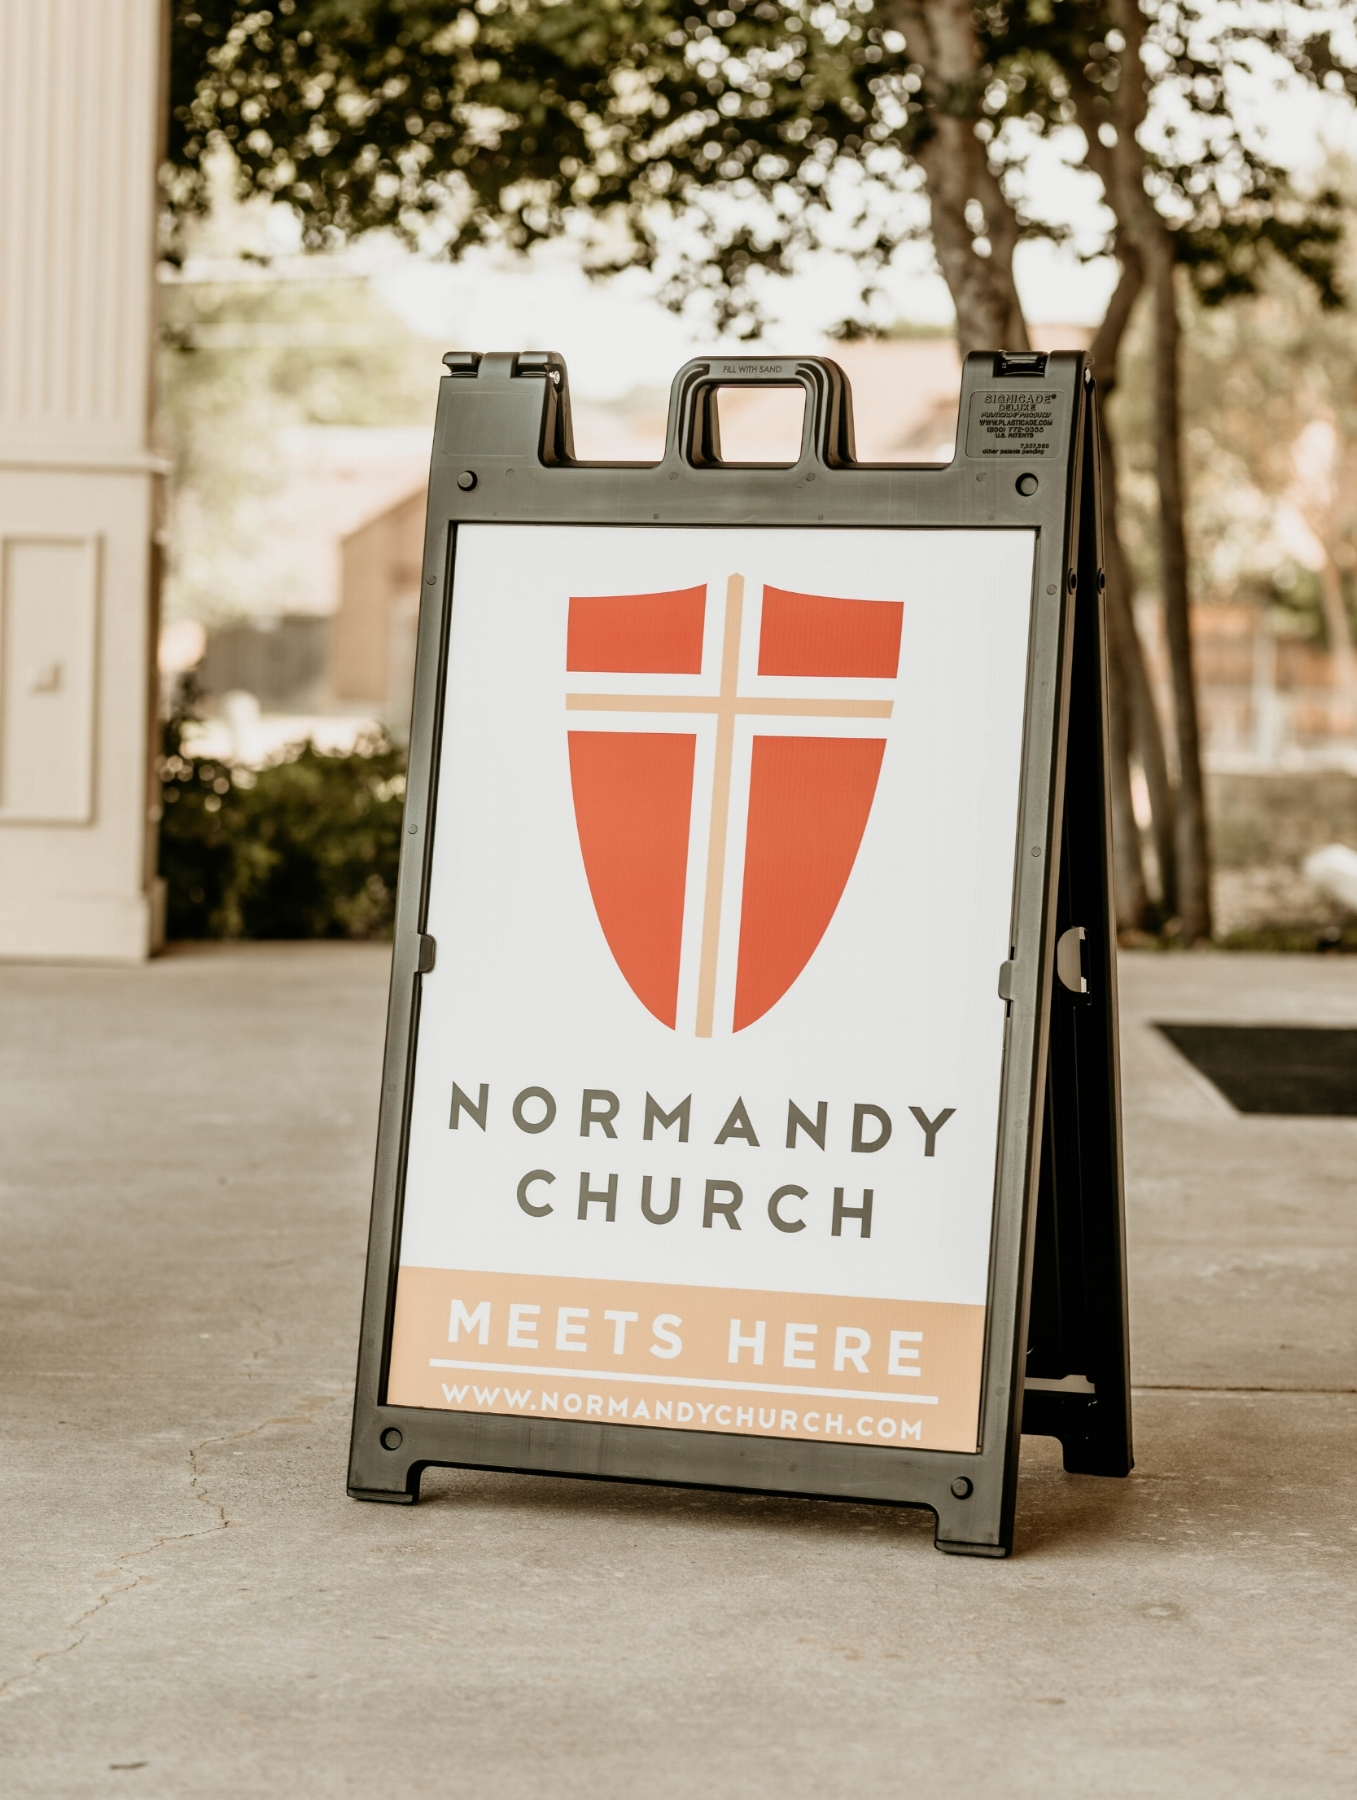 Sunday Service - 10:00 a.m.at Scofield Memorial Church (look for this sign!)7730 Abrams RoadDallas, Texas 75231